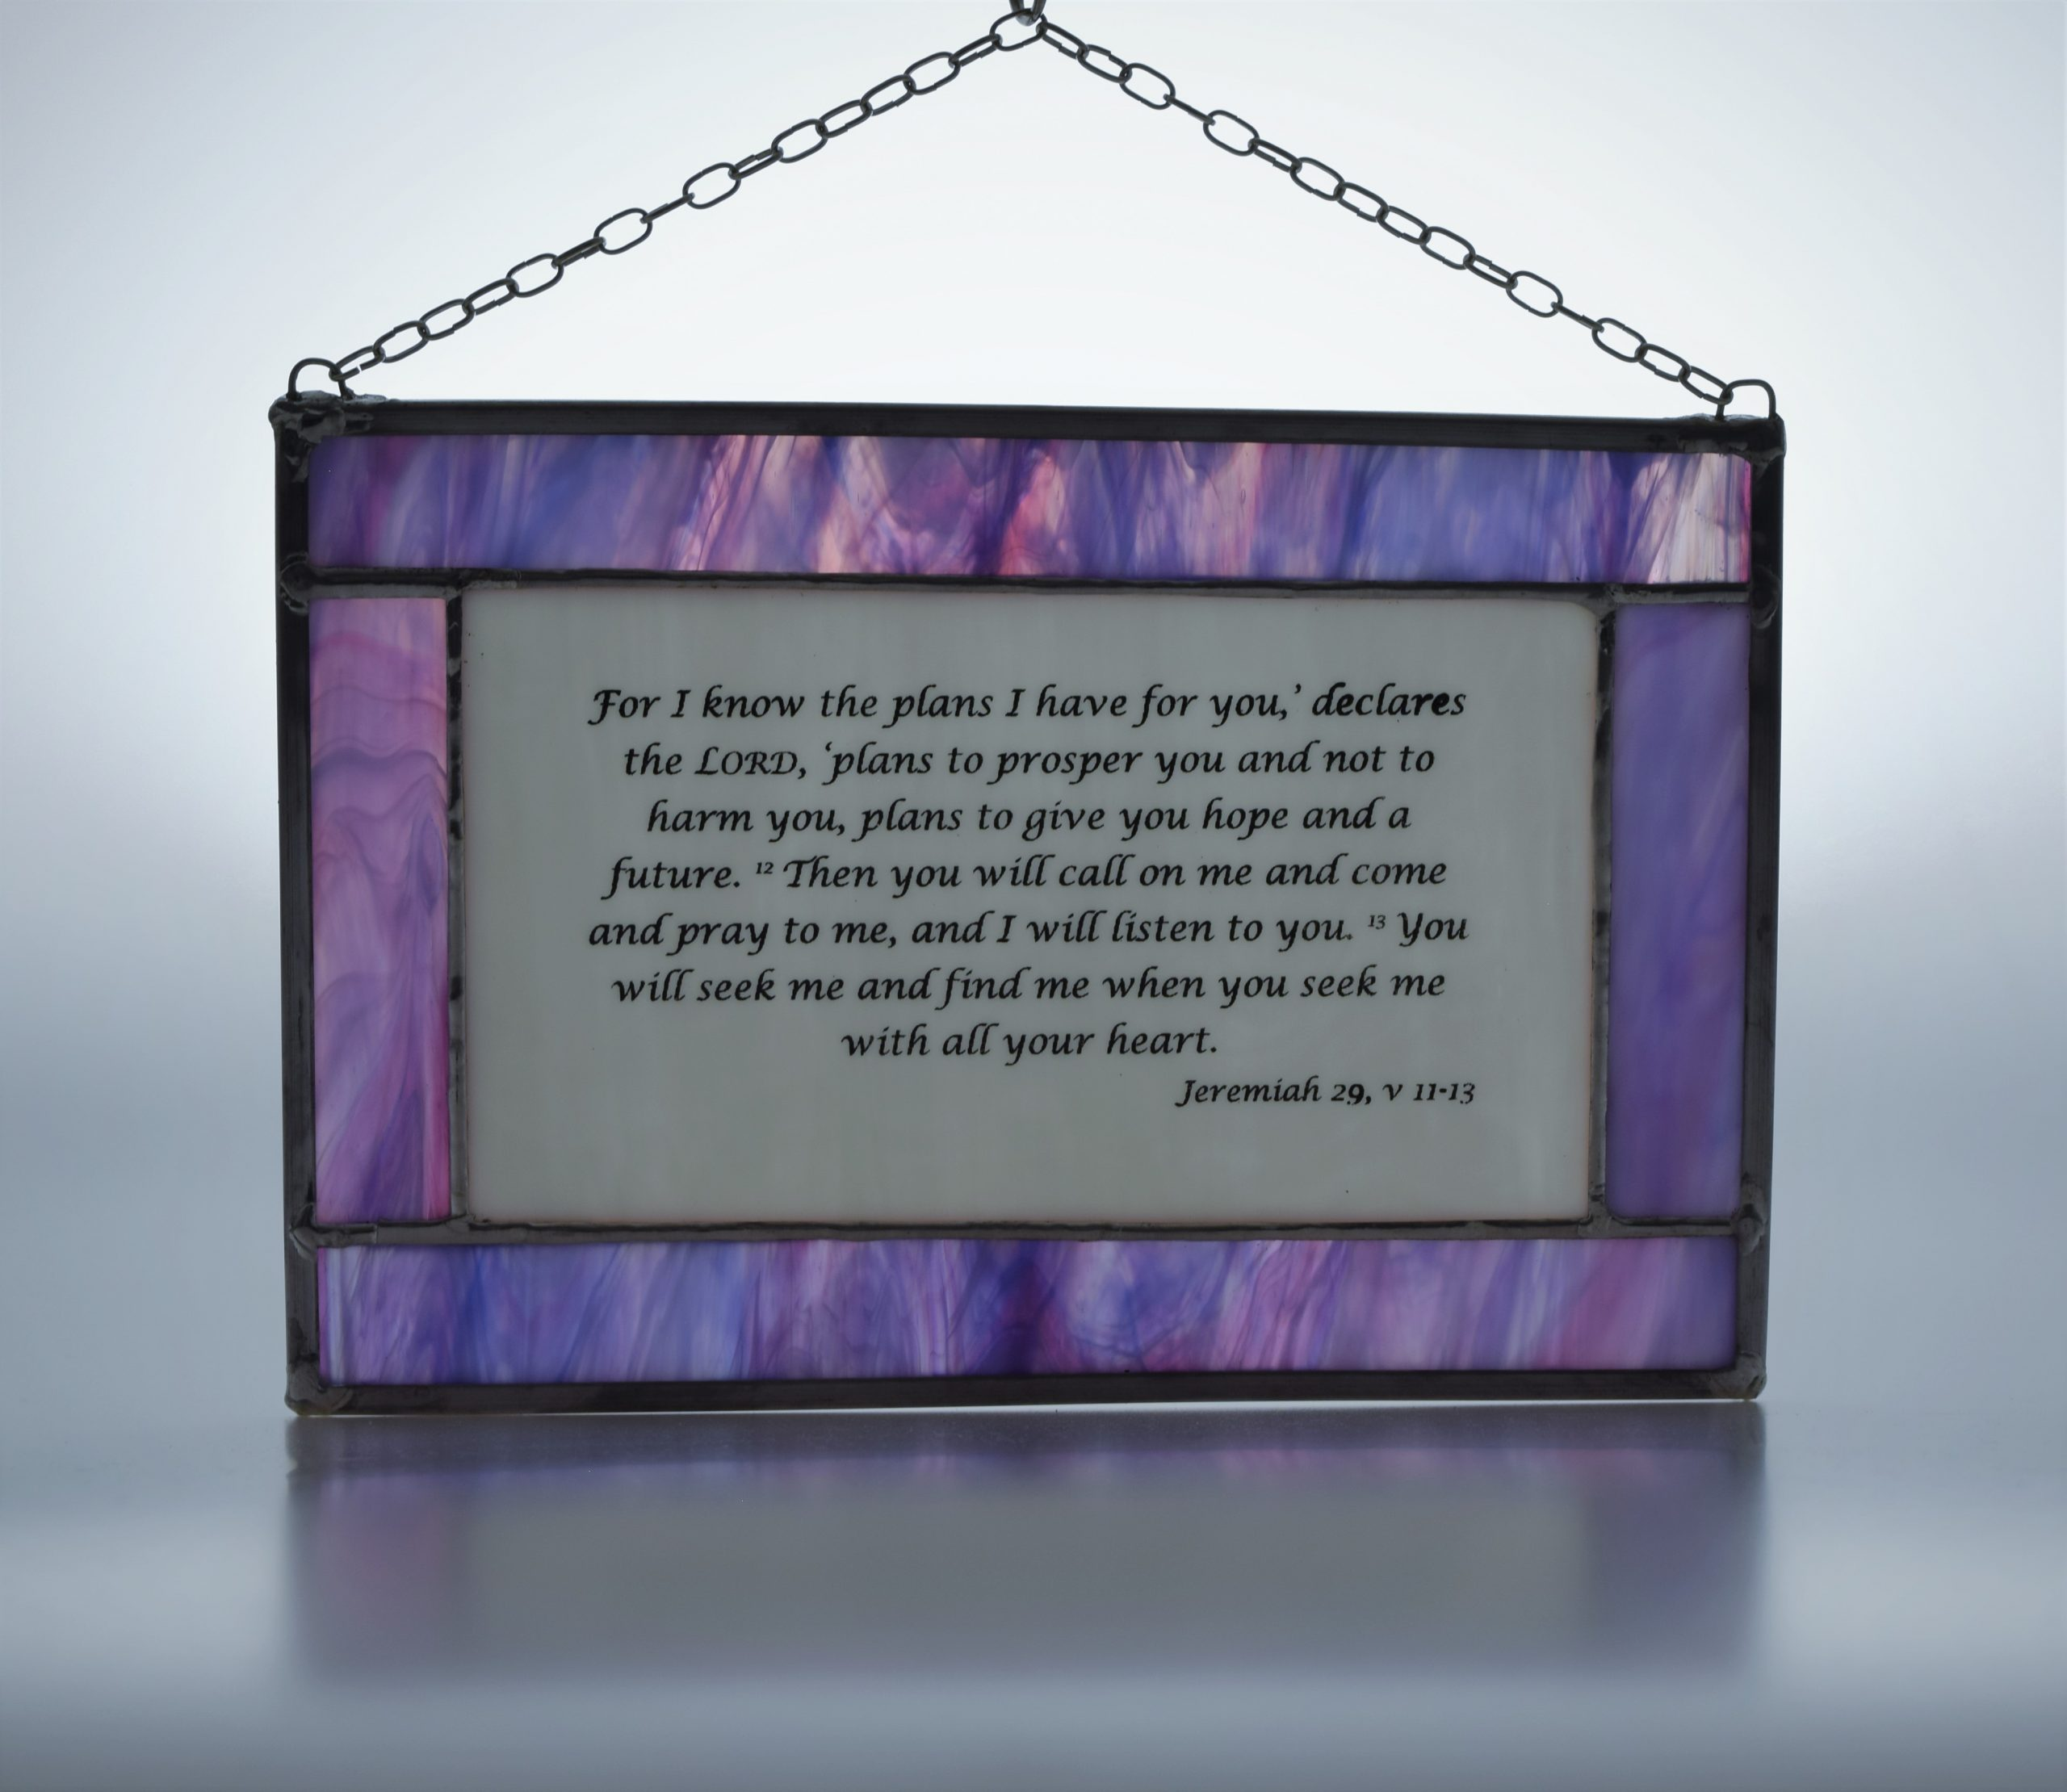 Stained glass panel in lilac and white, with old testament text from the book of Jeremiah